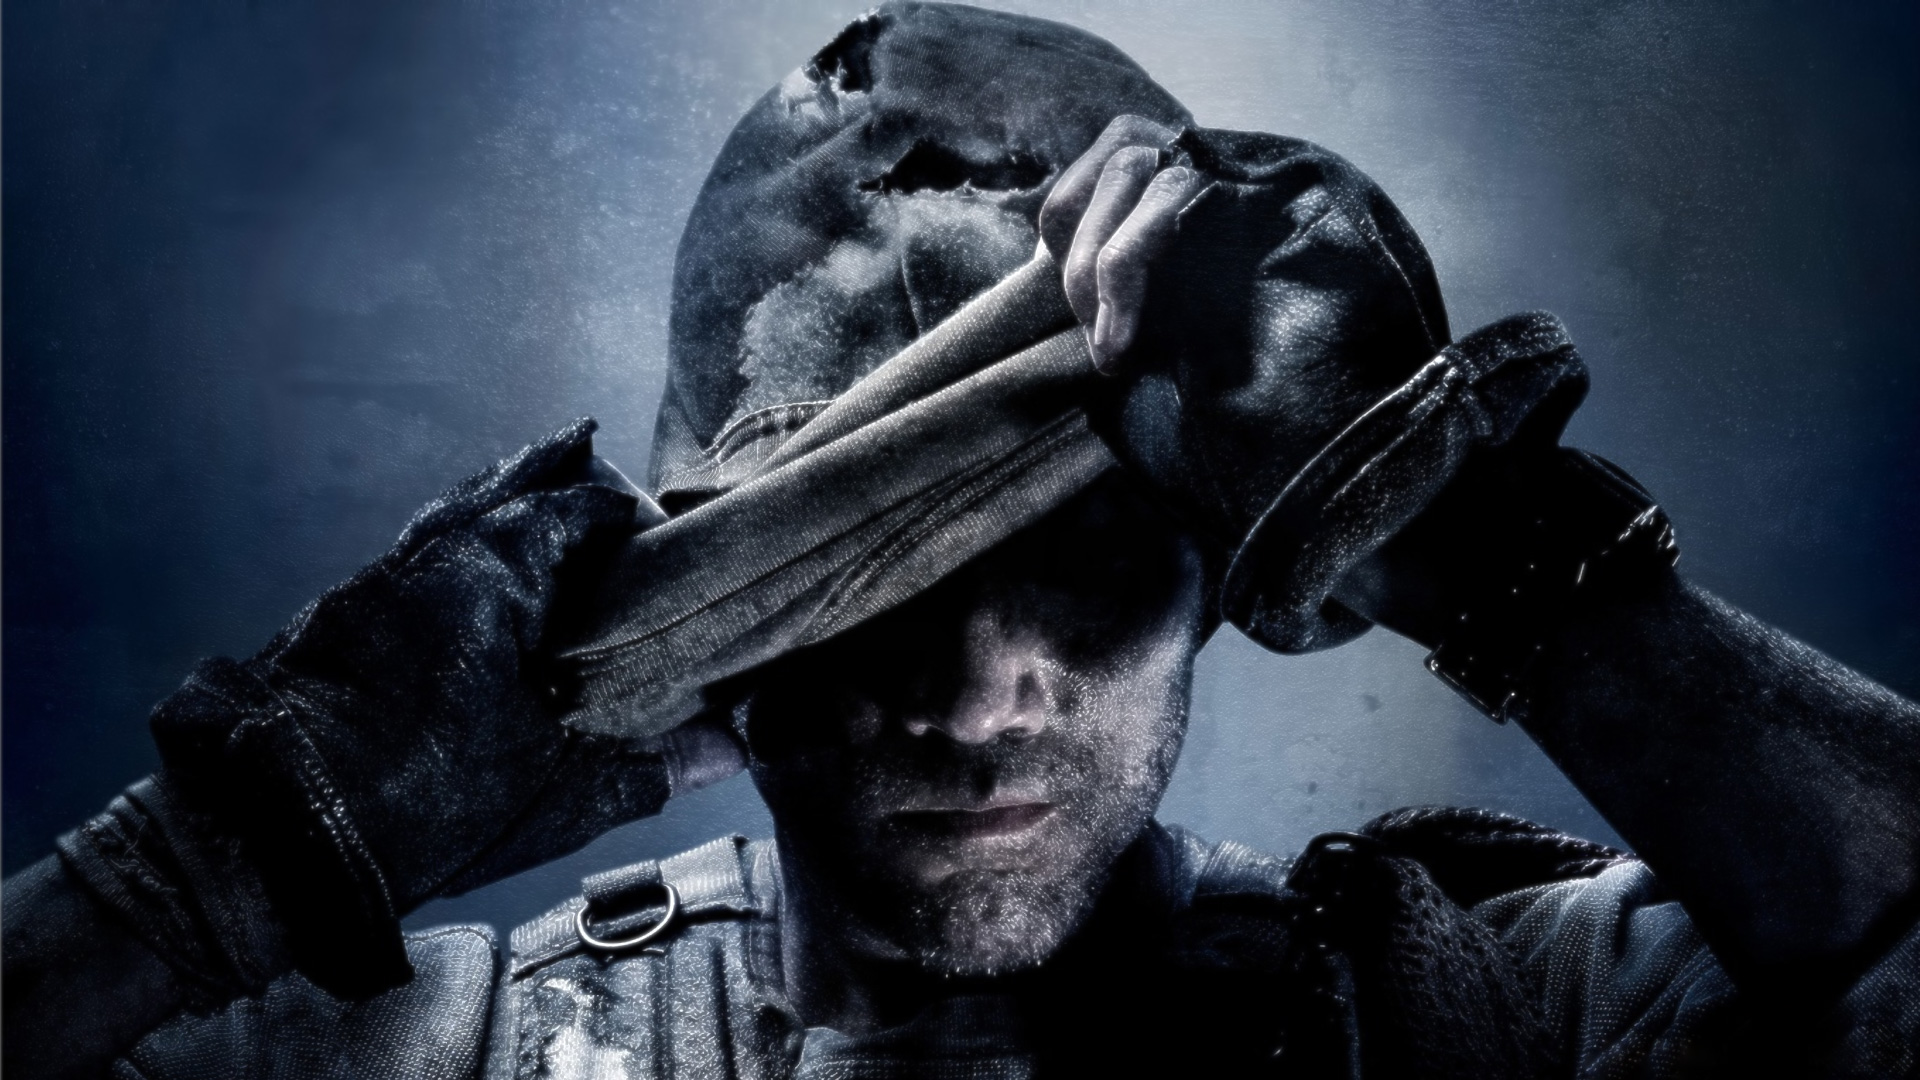 Free Download Ghosts Hd Wallpapers Call Of Duty Ghosts Call Of